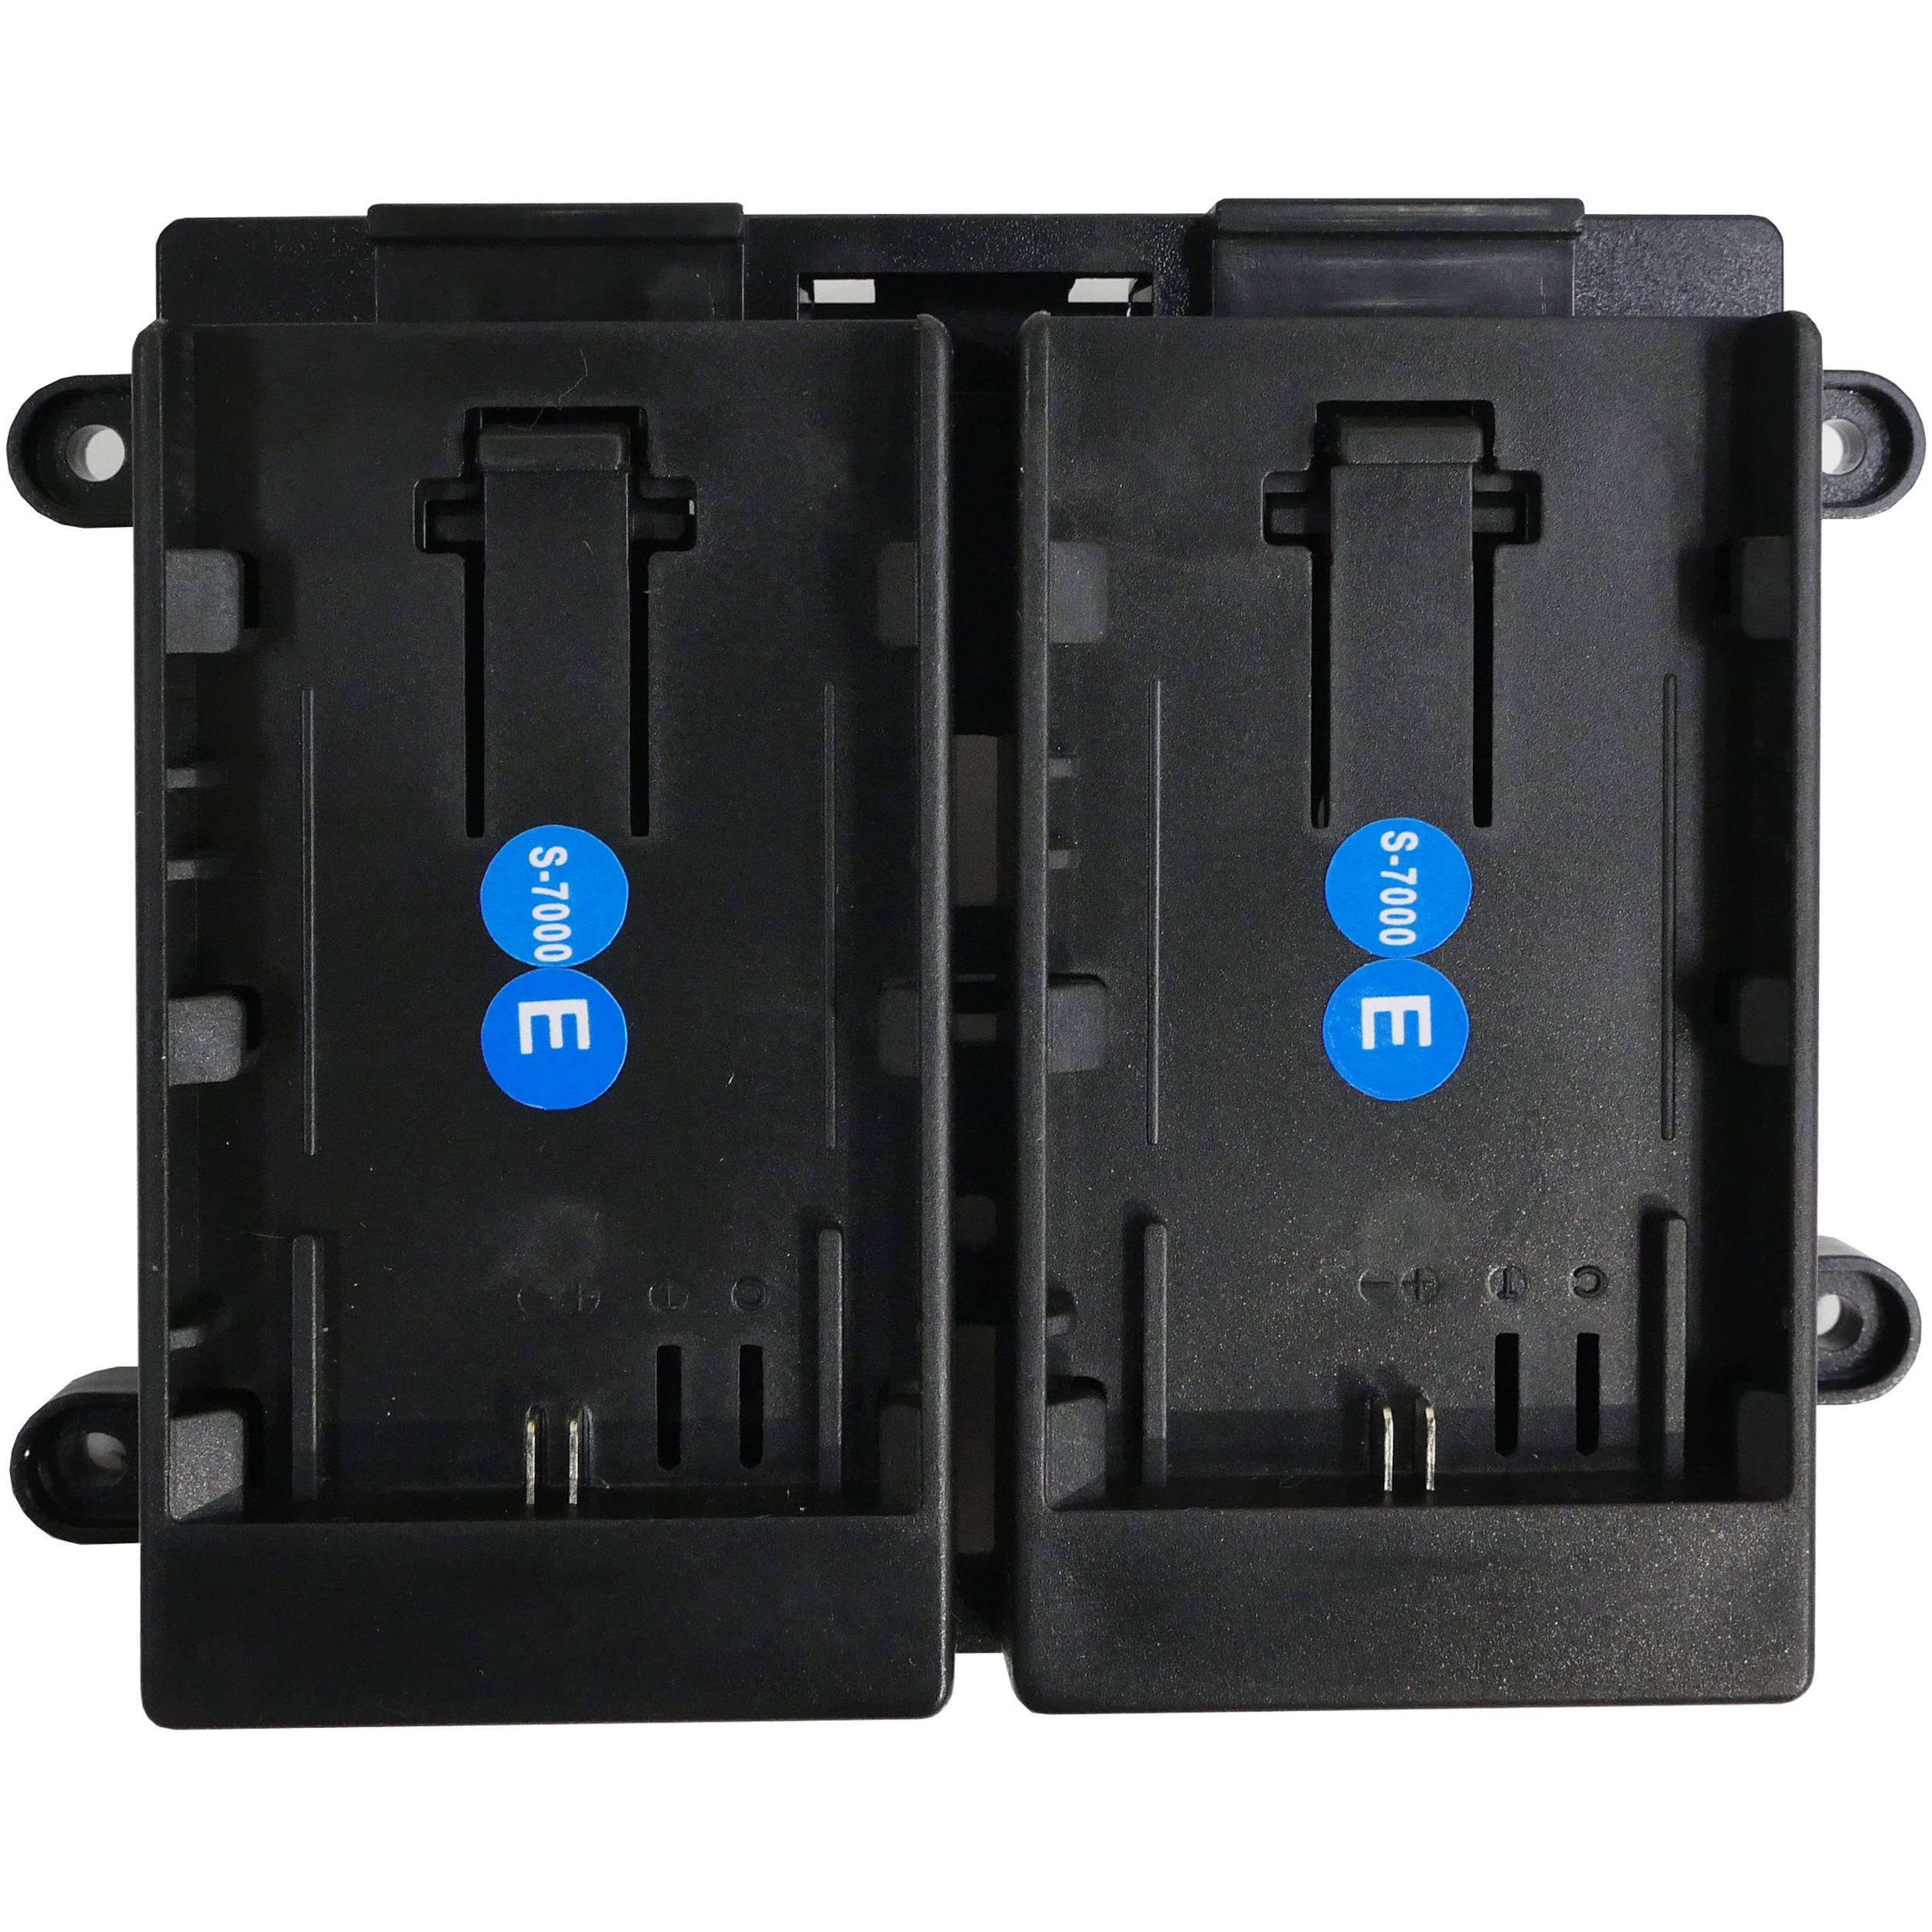 Tvlogic 7 4v Battery Bracket For Canon Lp